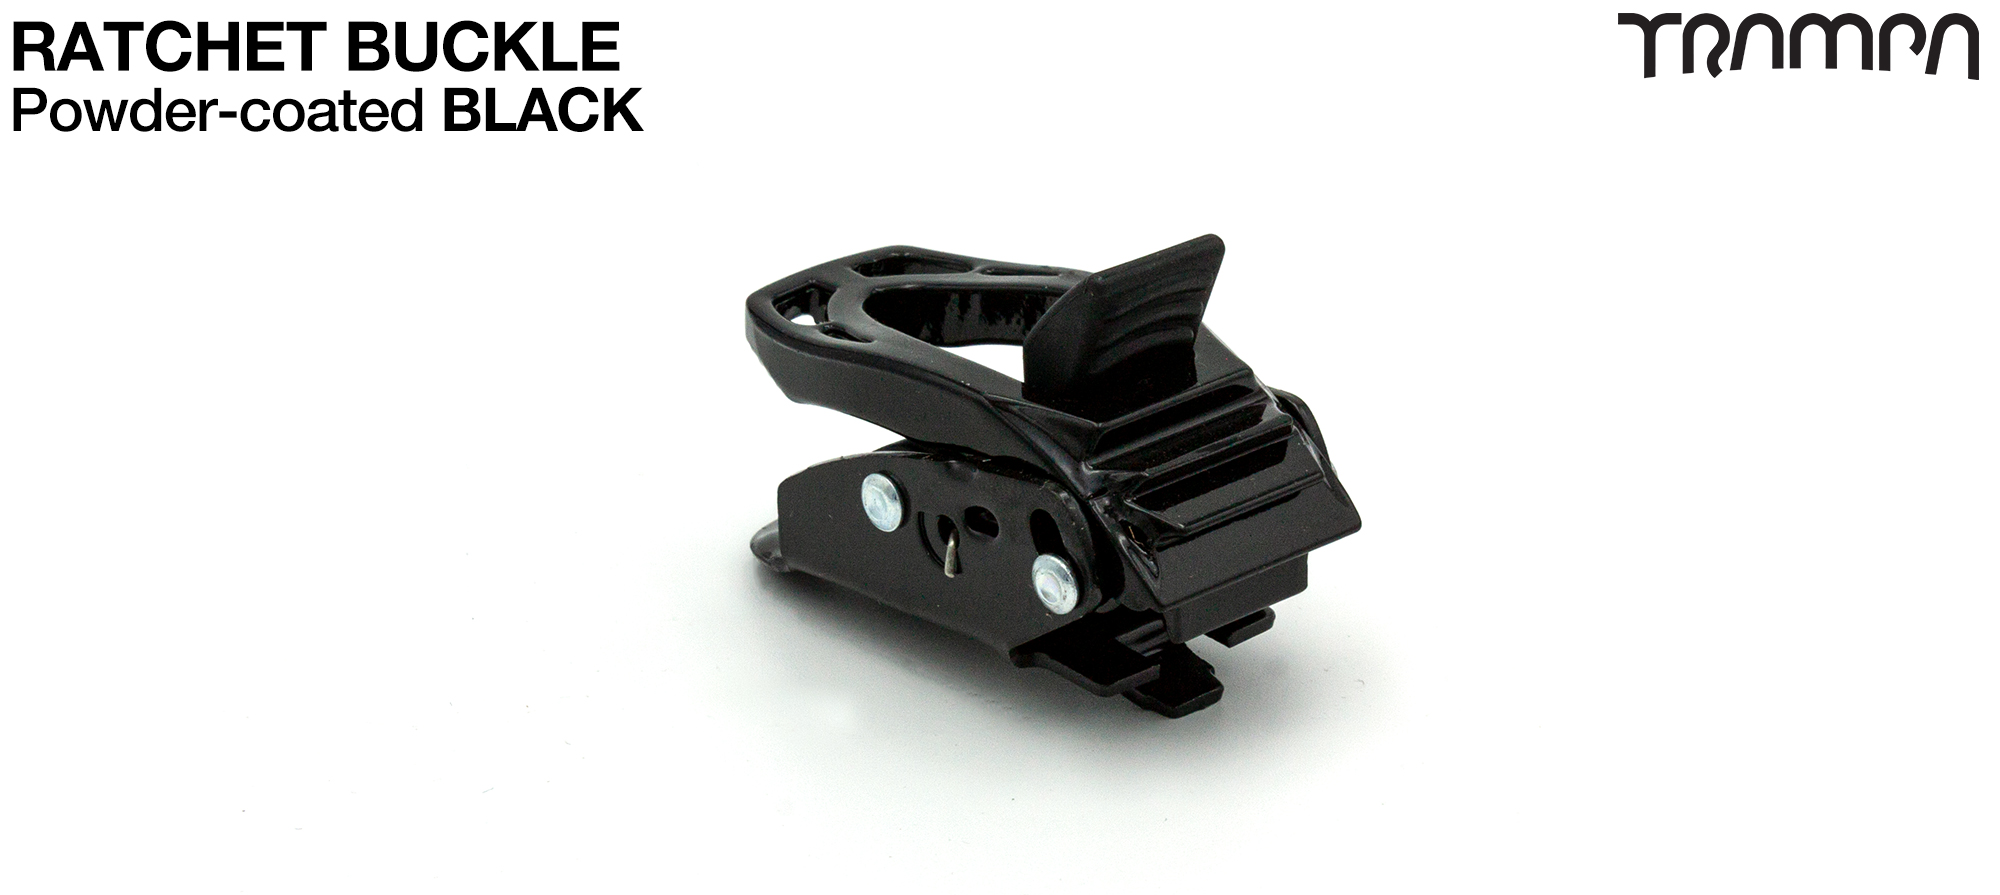 BLACK Ratchet Buckle